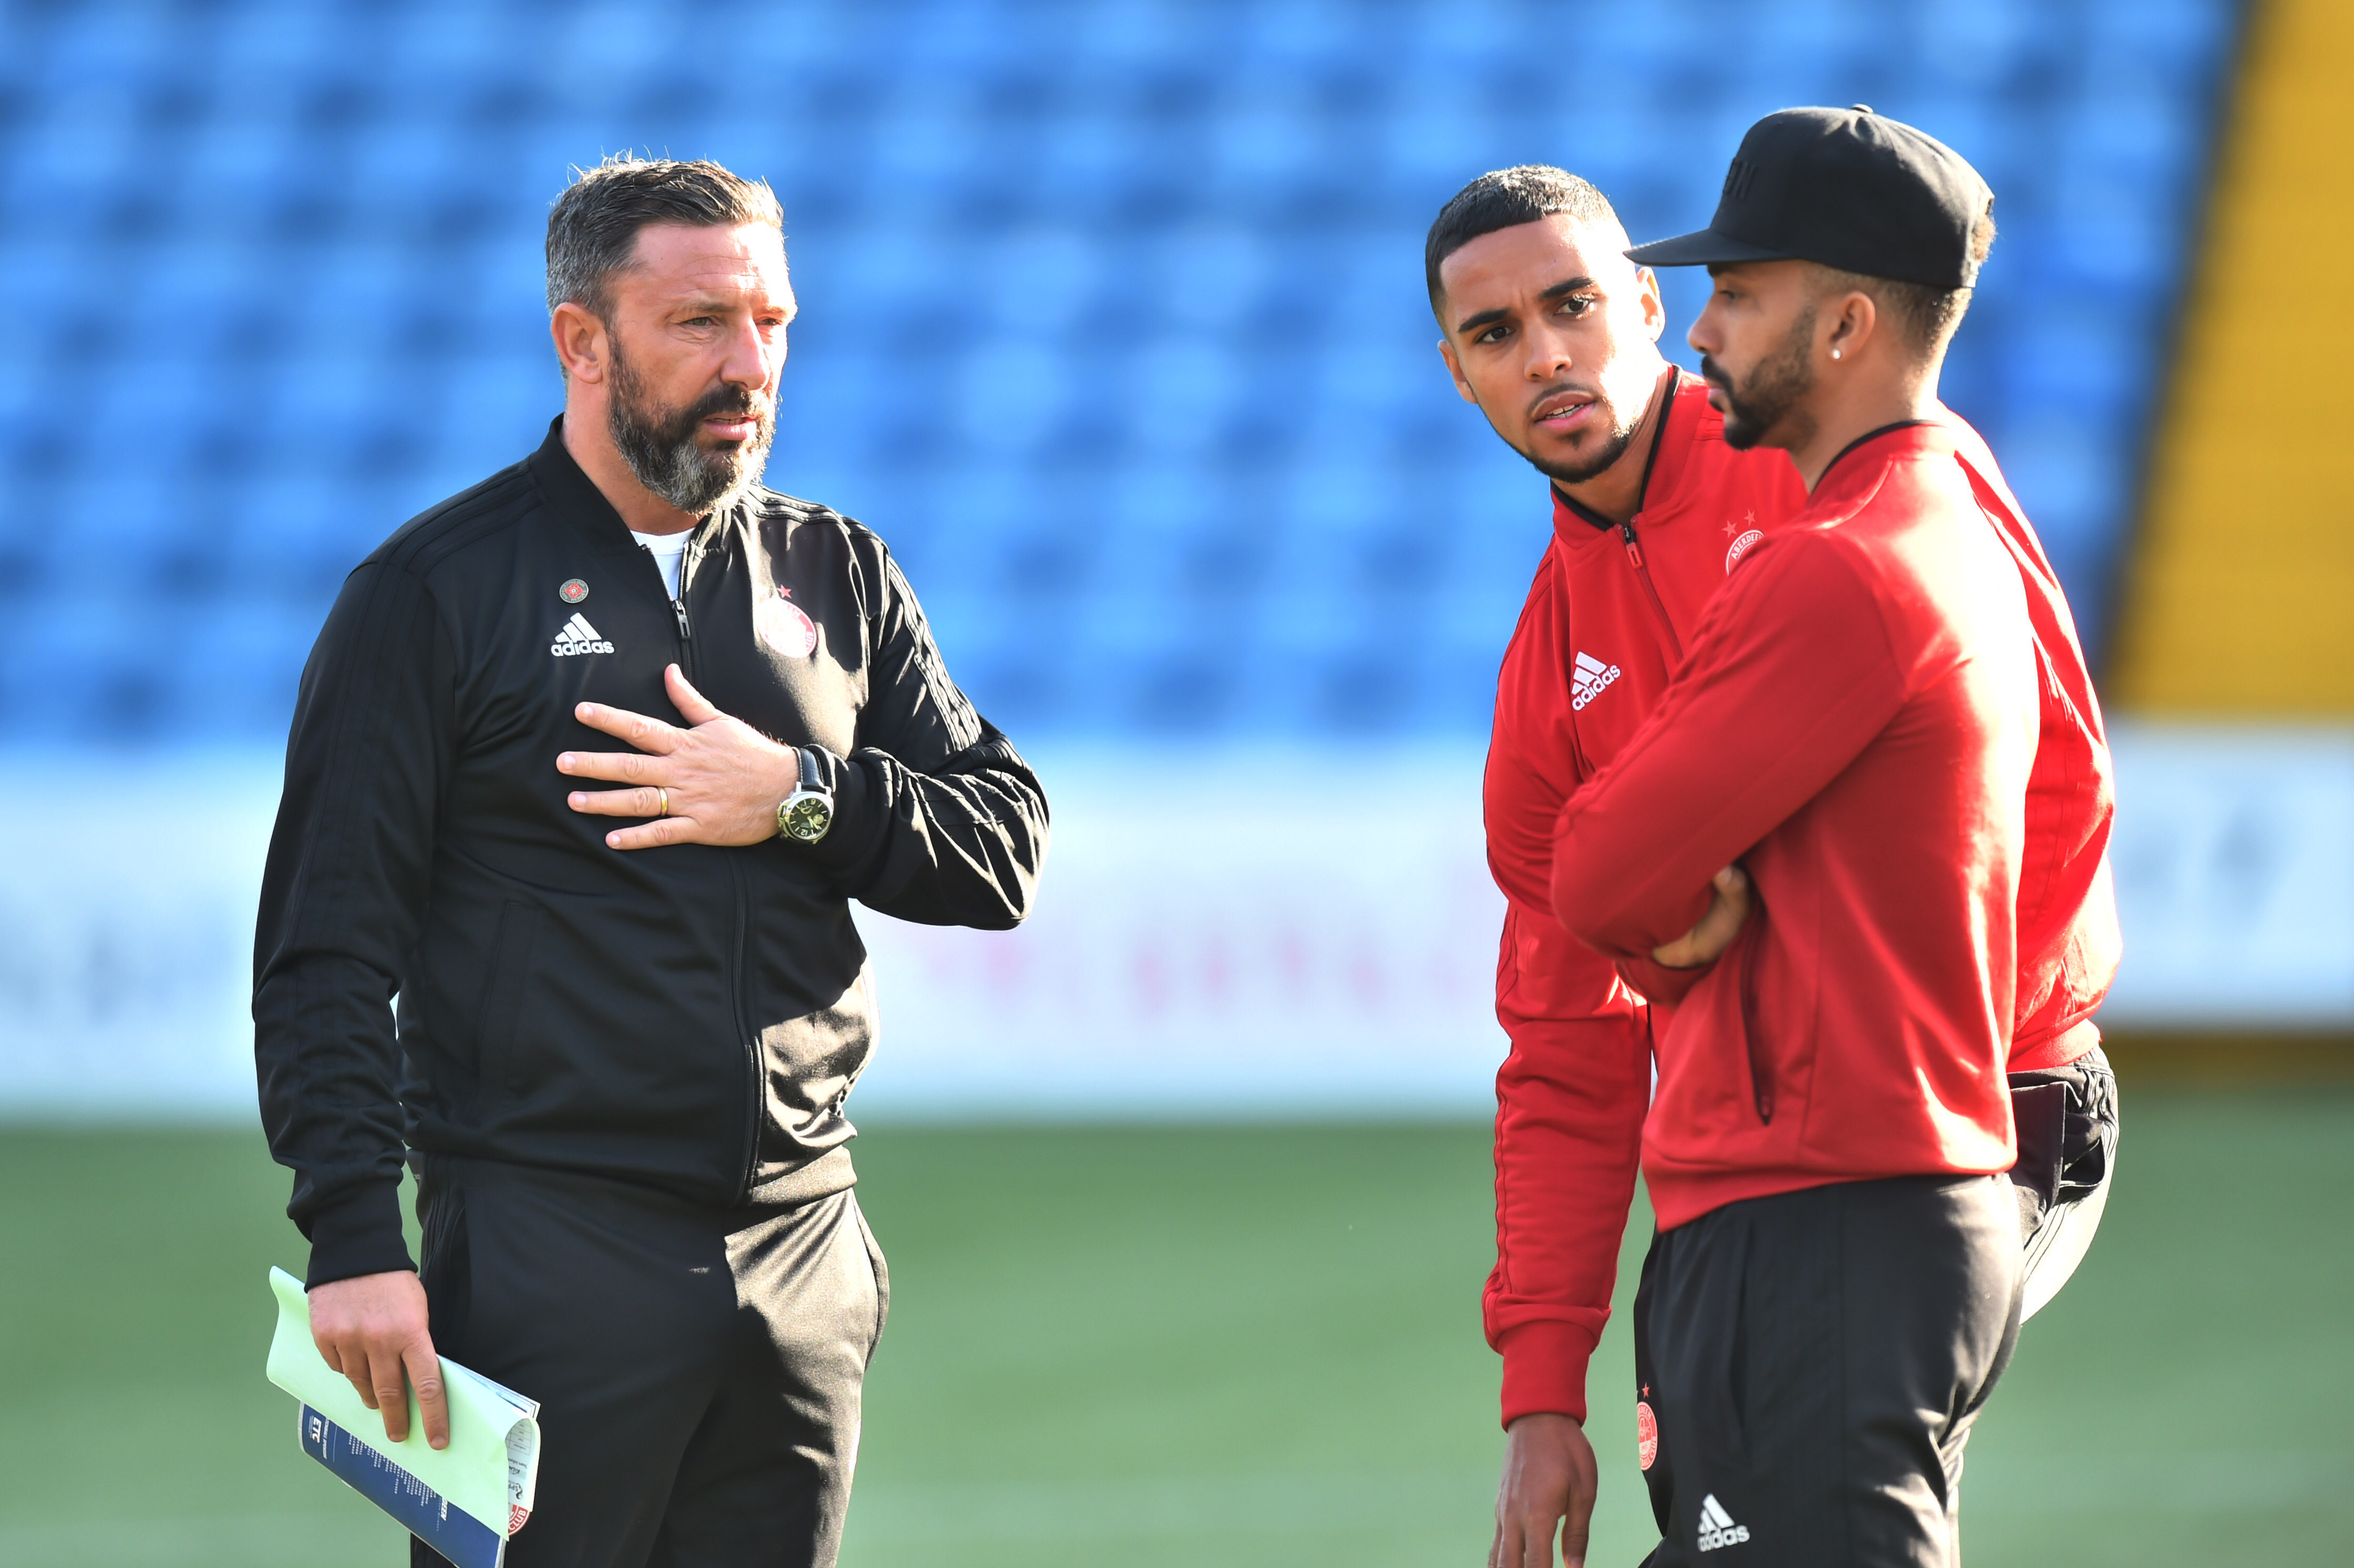 Aberdeen manager Derek McInnes with Max Lowe and Shay Logan.